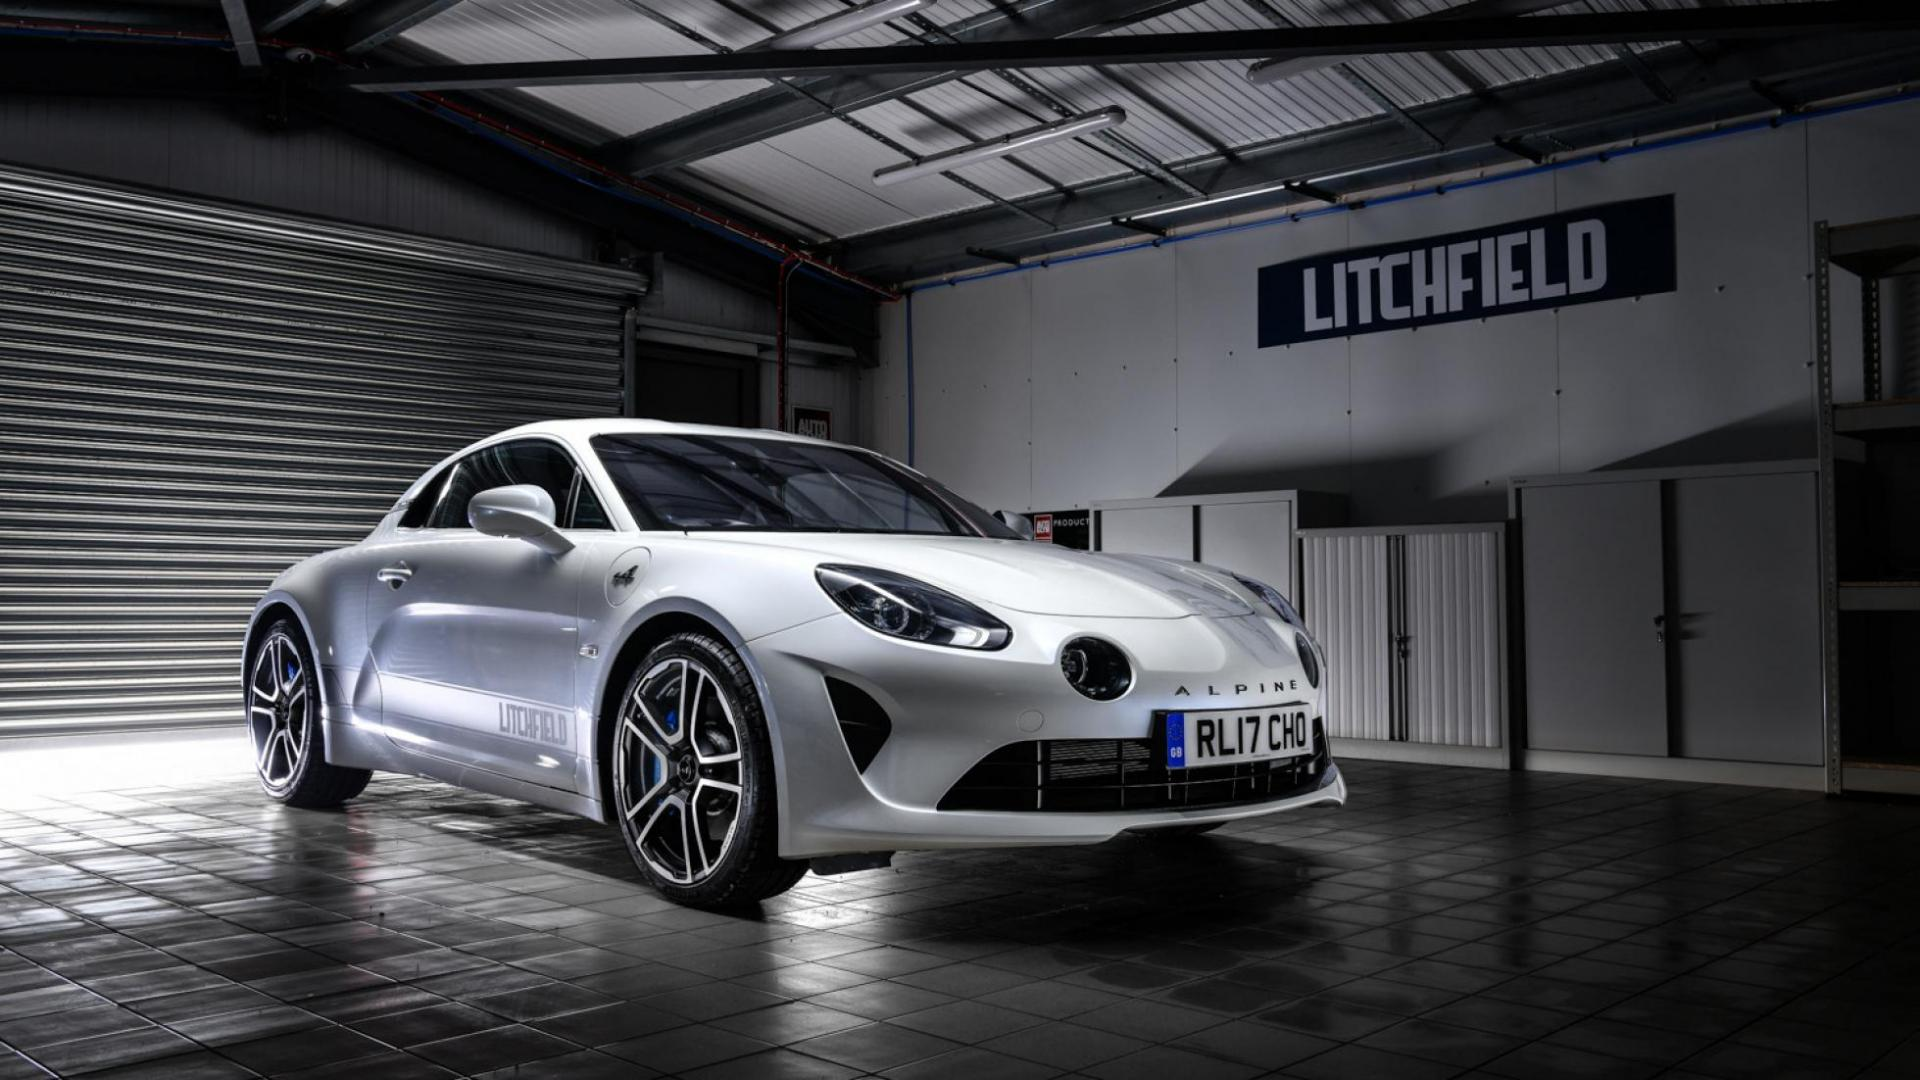 Litchfield Alpine A110